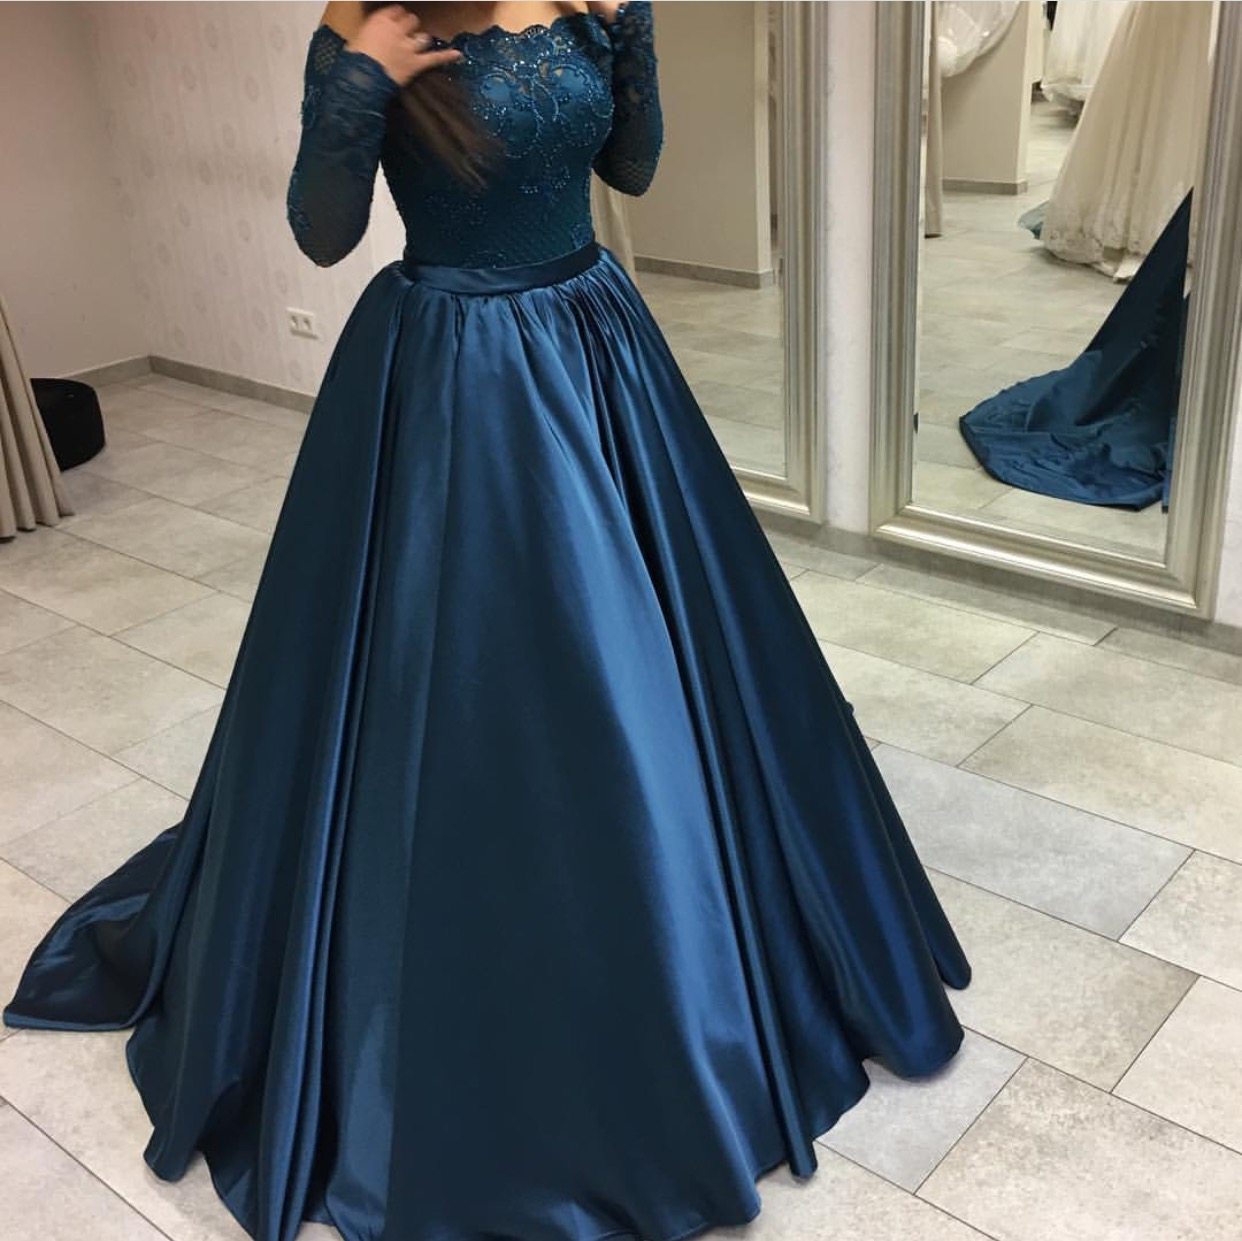 4840b556f0 P80 Navy Blue Satin Long Sleeves Prom Dresses Ball Gowns